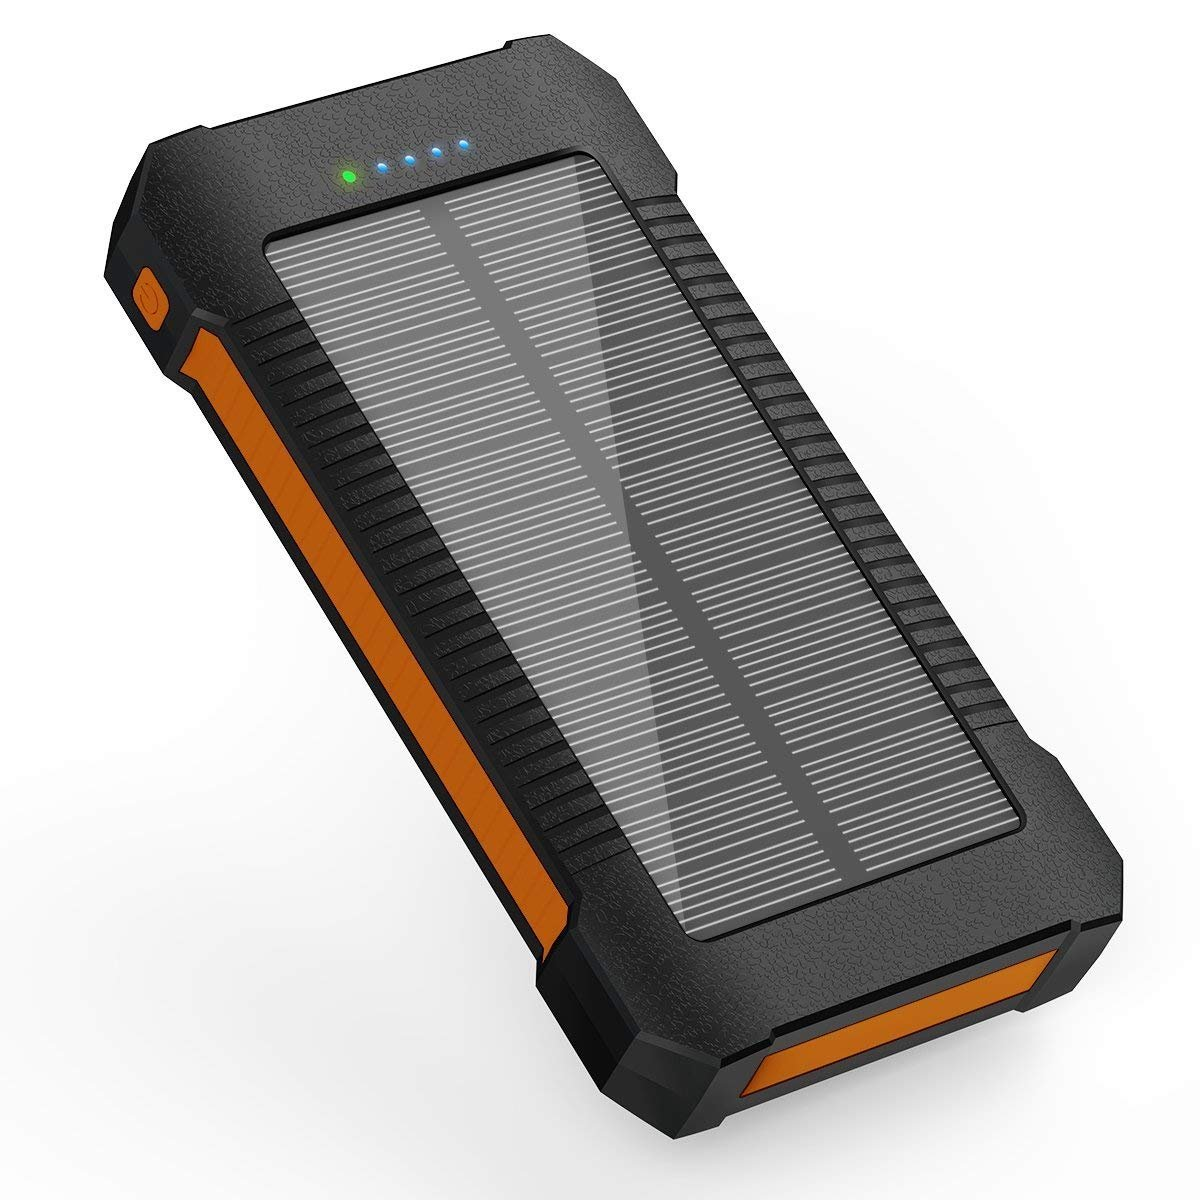 LICORNE Solar Power Bank,22000mAh Solar Chargers Fast Charging USB-C Input/Output & Dual USB Output & LED Flashlight,IPX7Waterproof,Shockproof,Suitable iPhone,iPad,Samsung,Android Smartphones etc by LICORNE